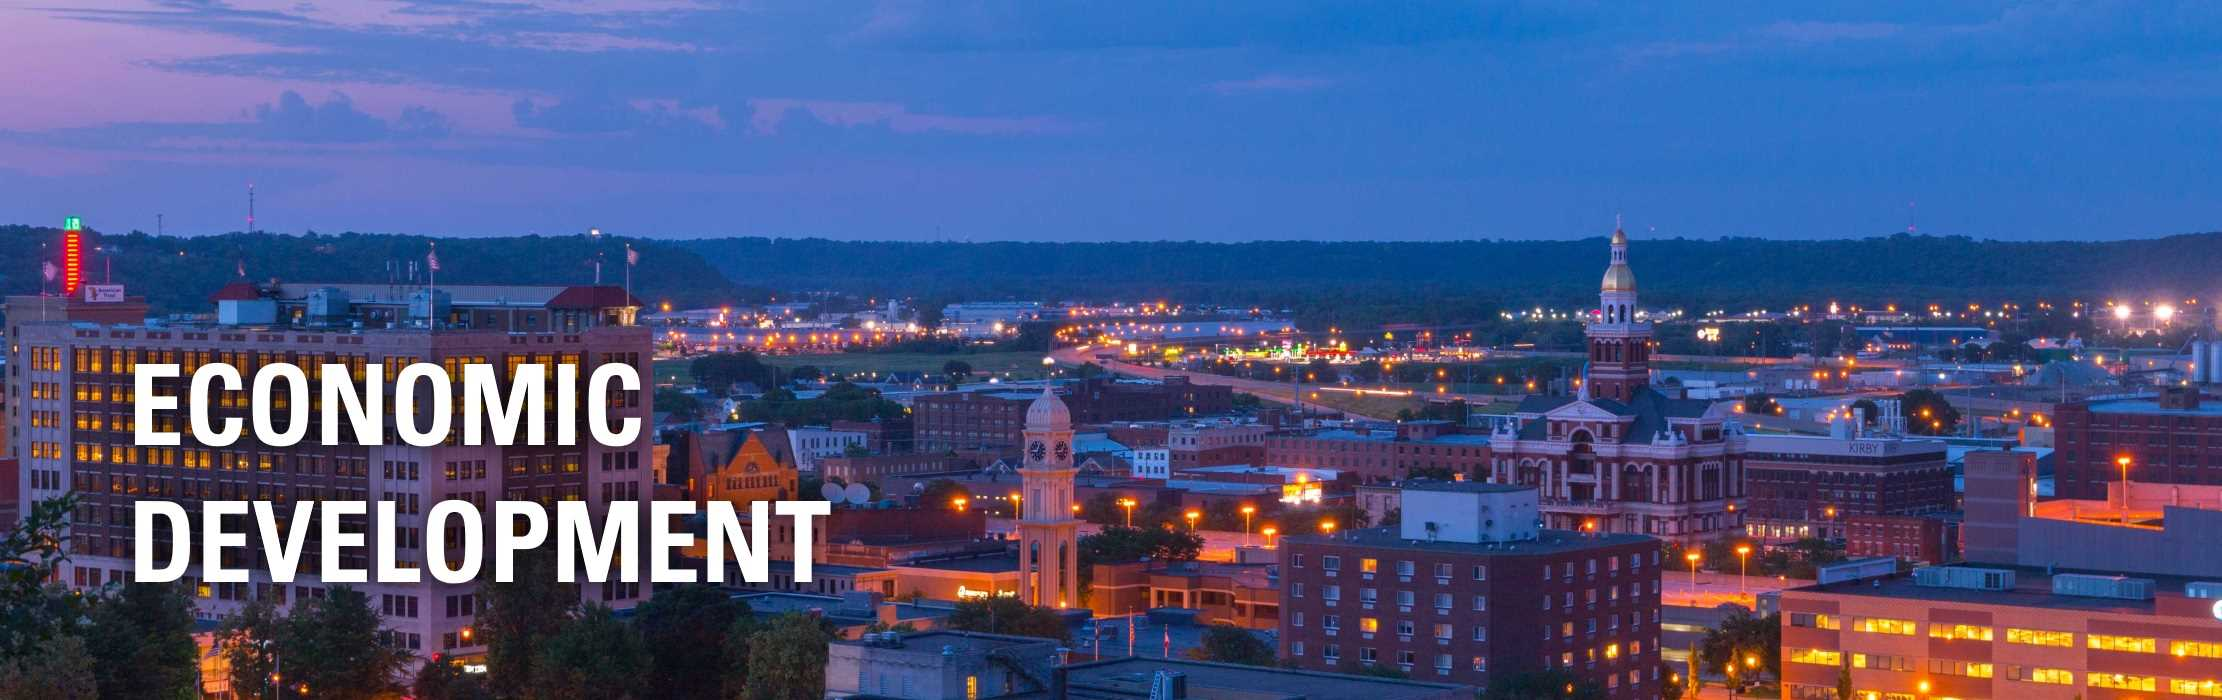 A nightscape of the City of Dubuque, Iowa: Economic Development.